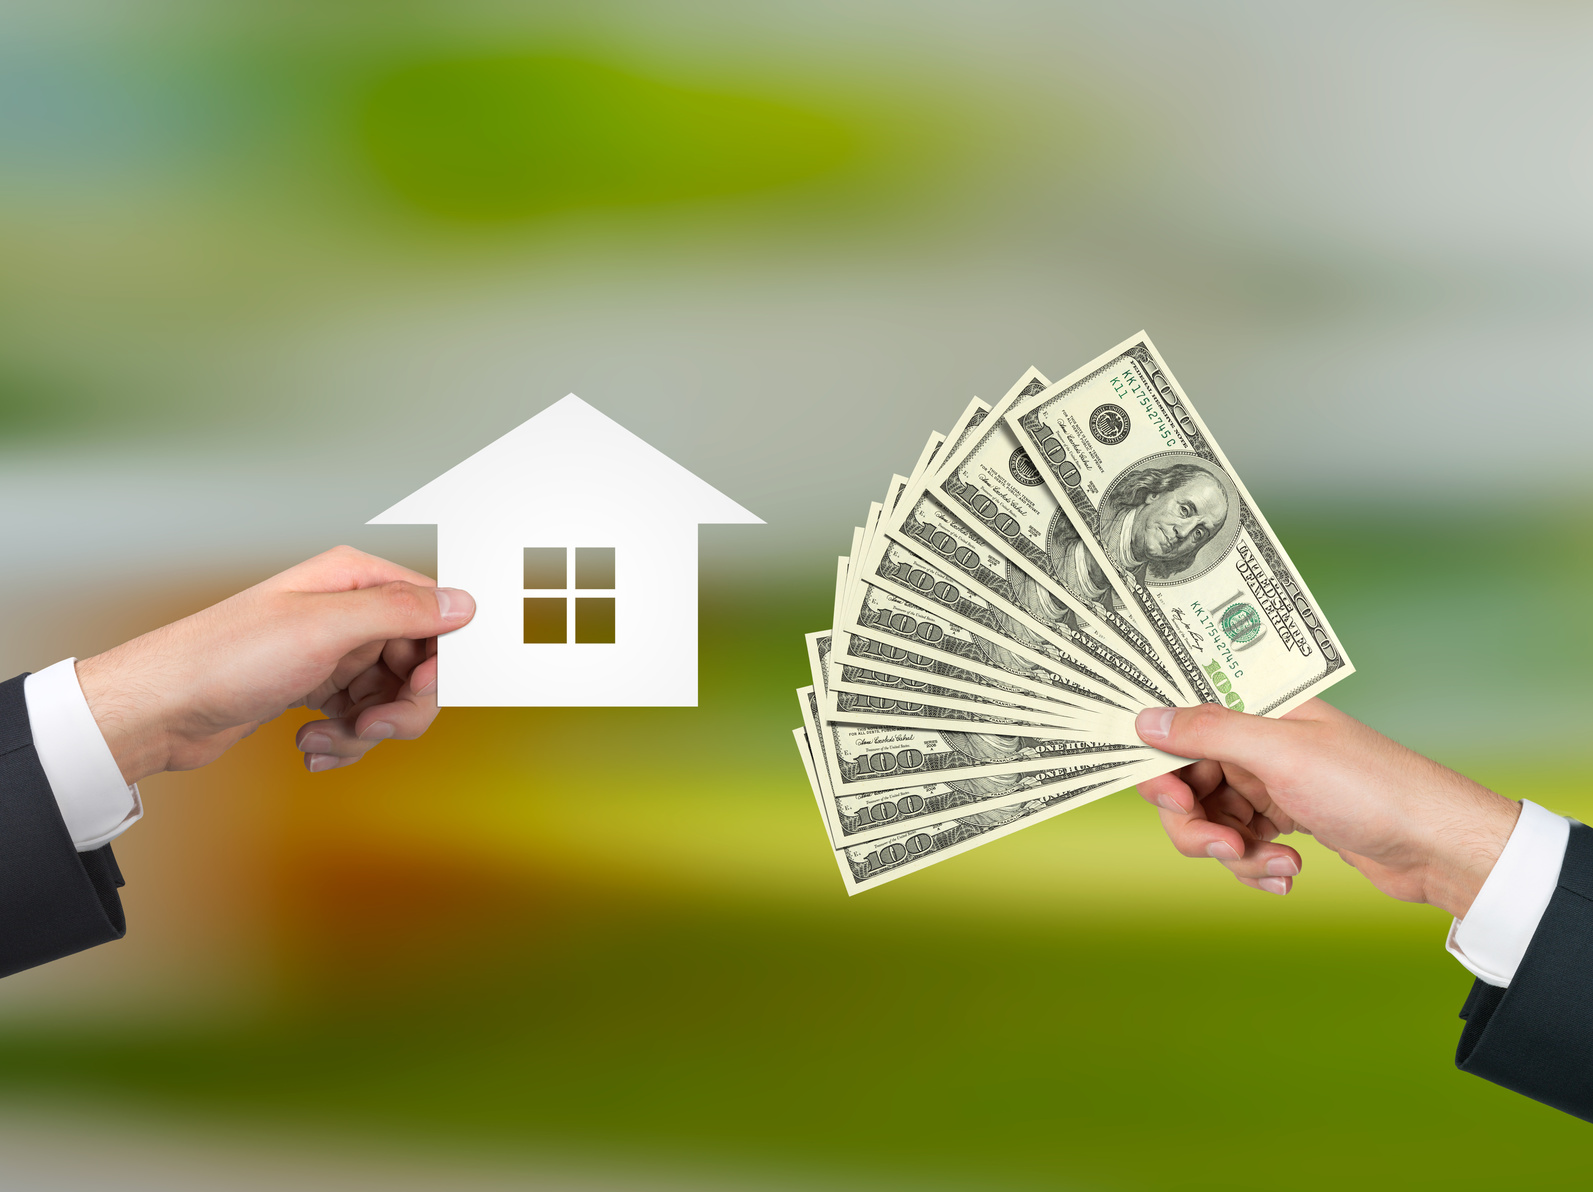 hand giving money for housing on a gray background